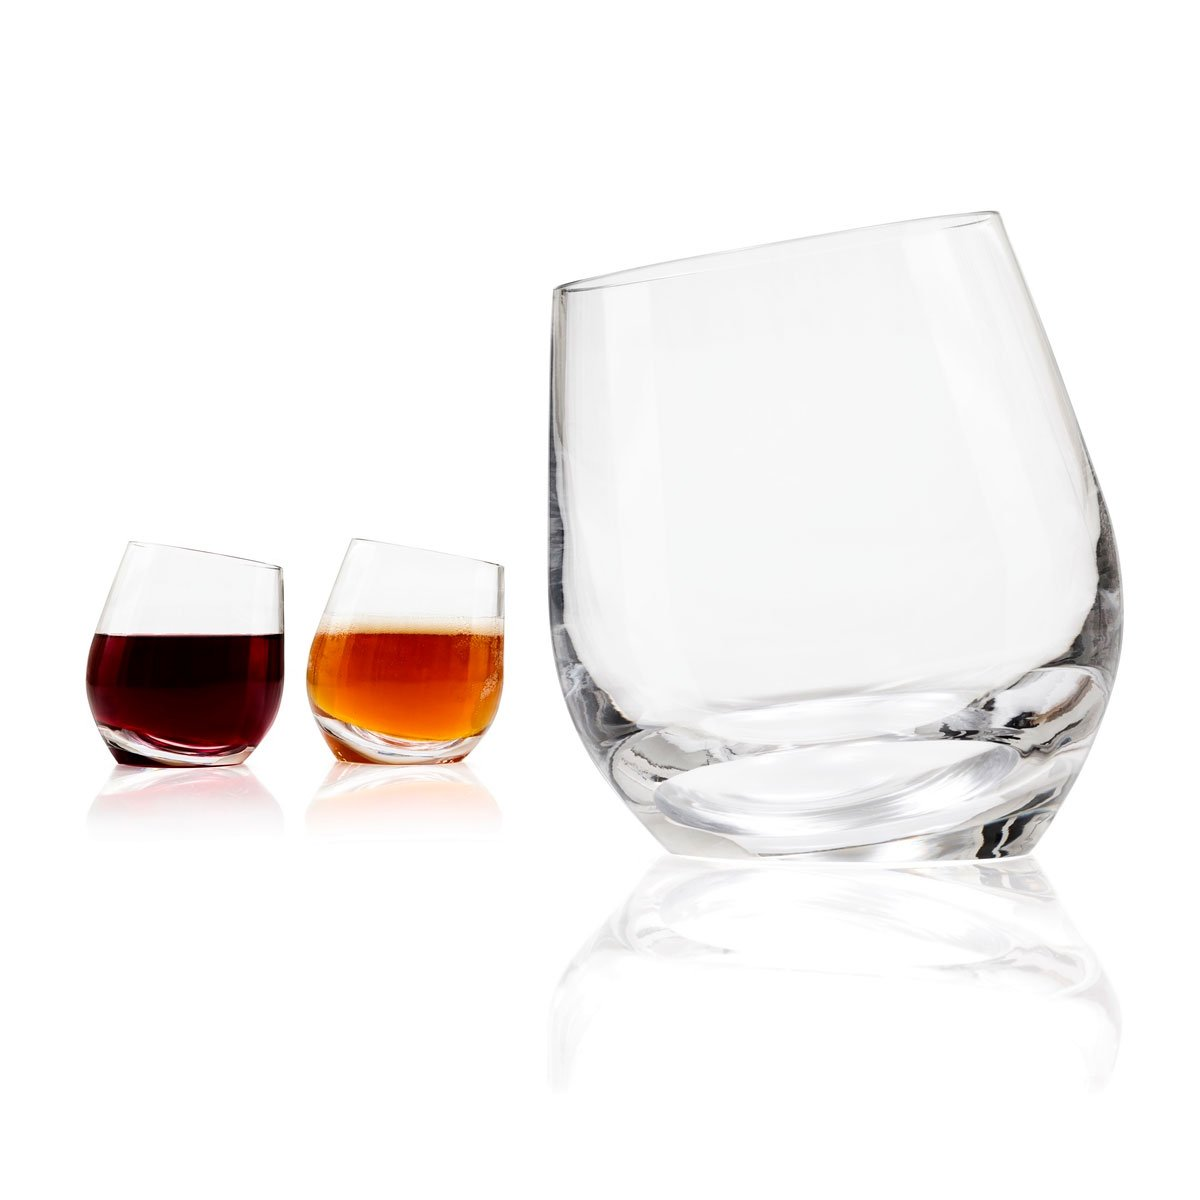 Tonfisk SHADOW stemless red wine / beer glasses (2) LG 11oz 33cl